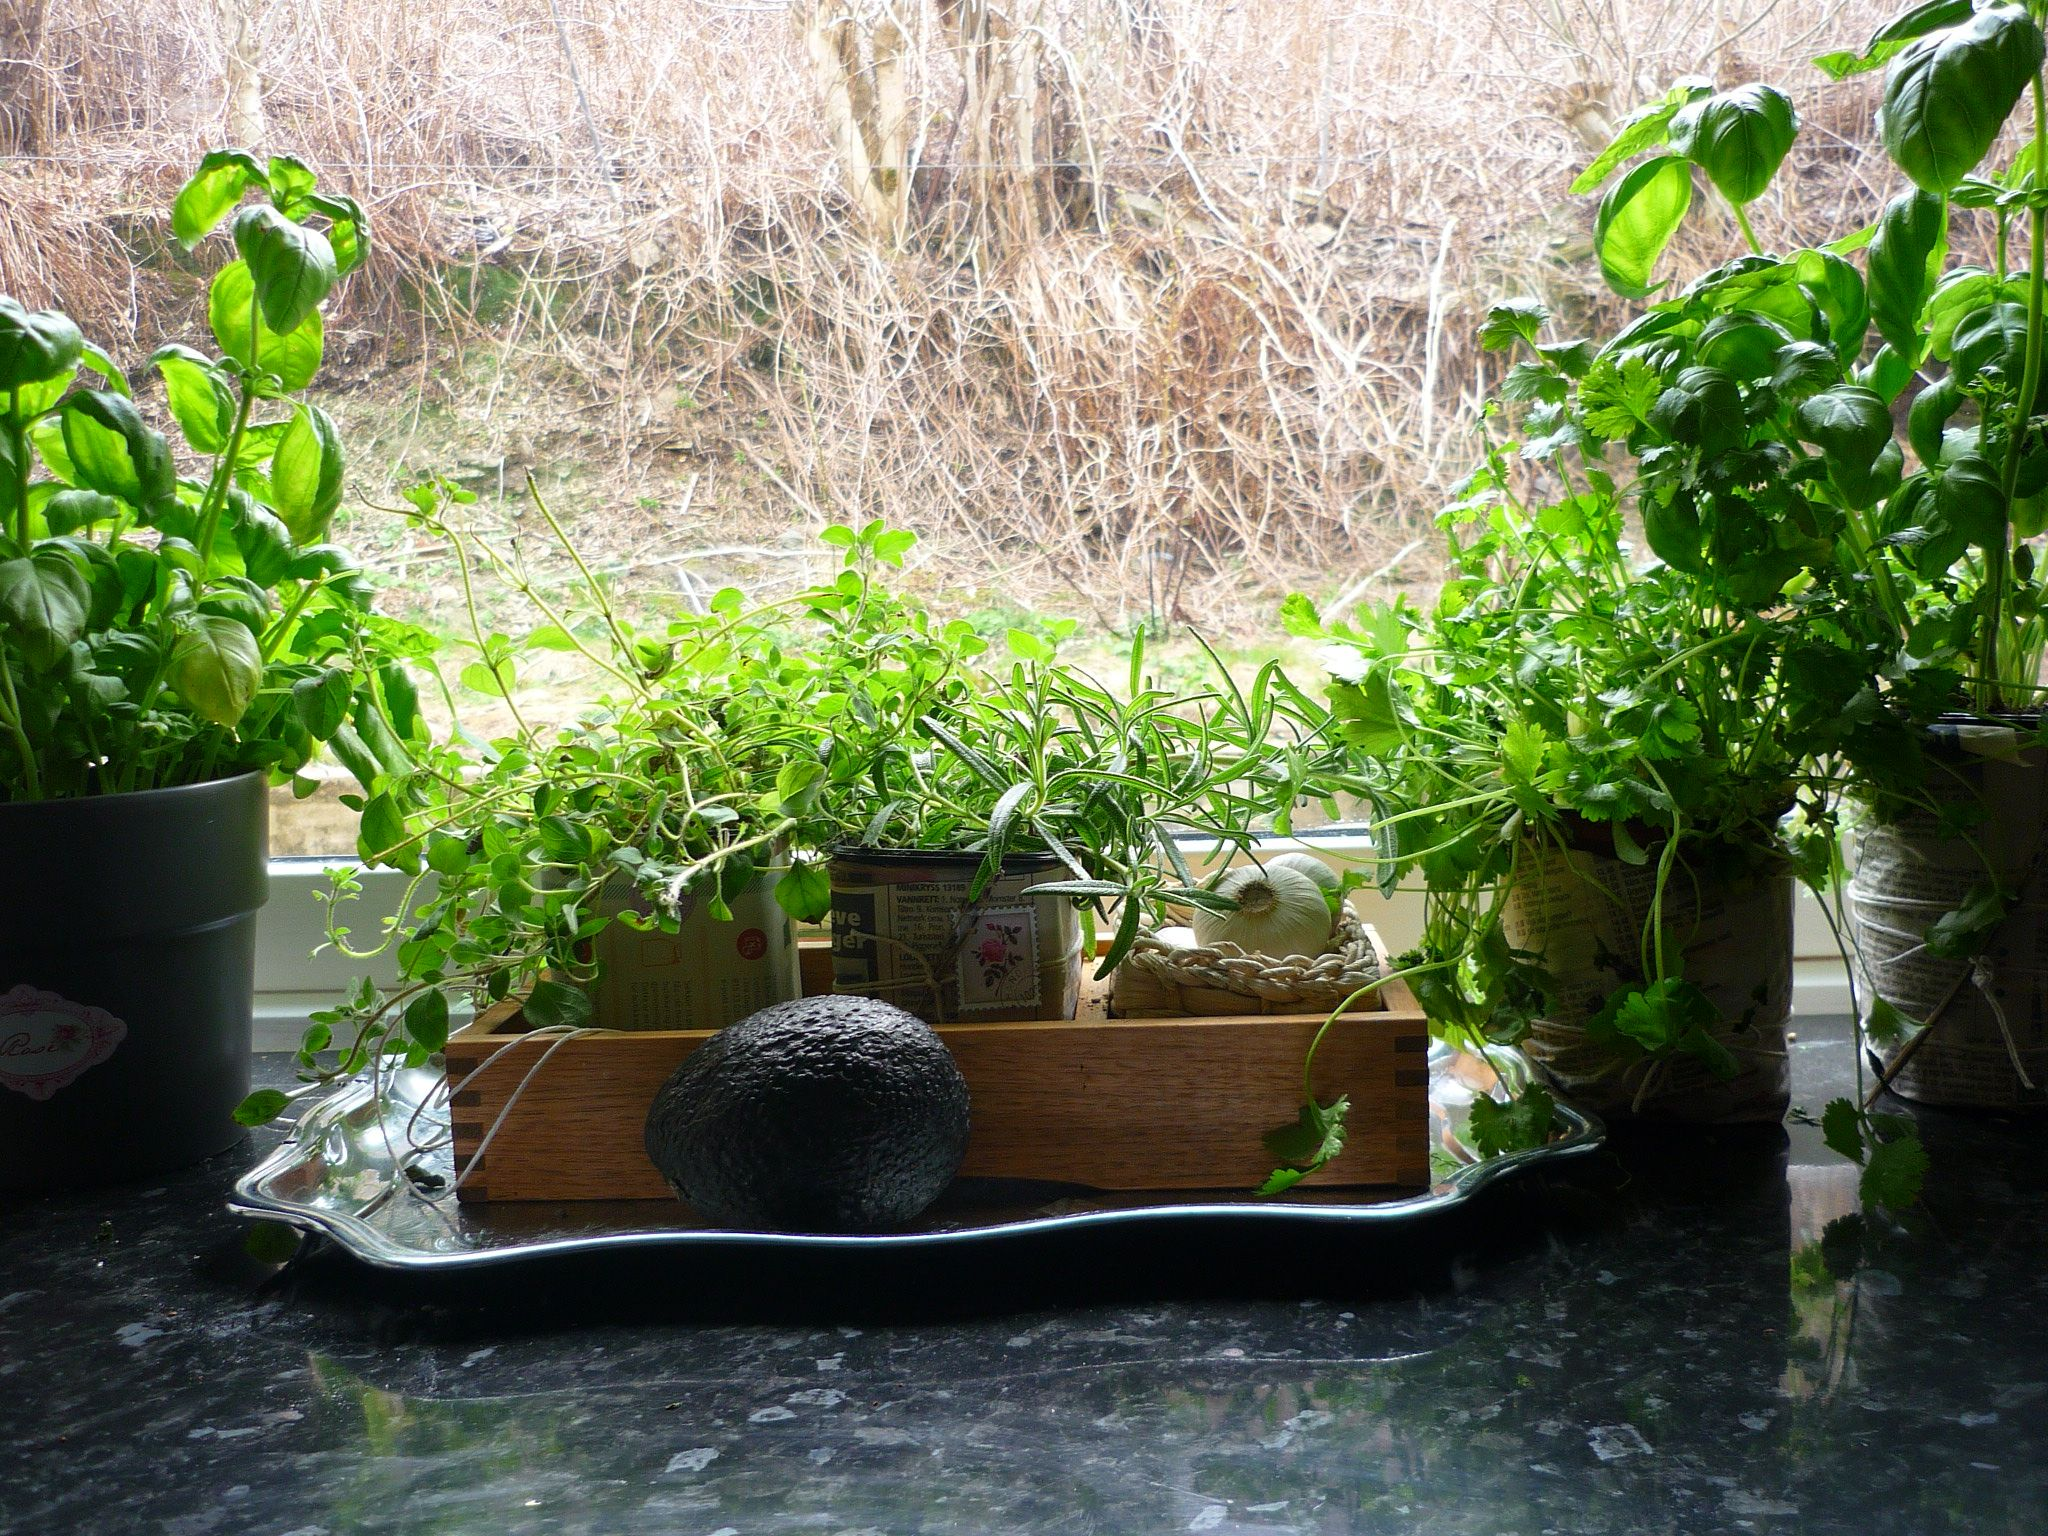 cut a clean milk carton,cover with newspaper and some neat decor; and voila! Cute herb pot!